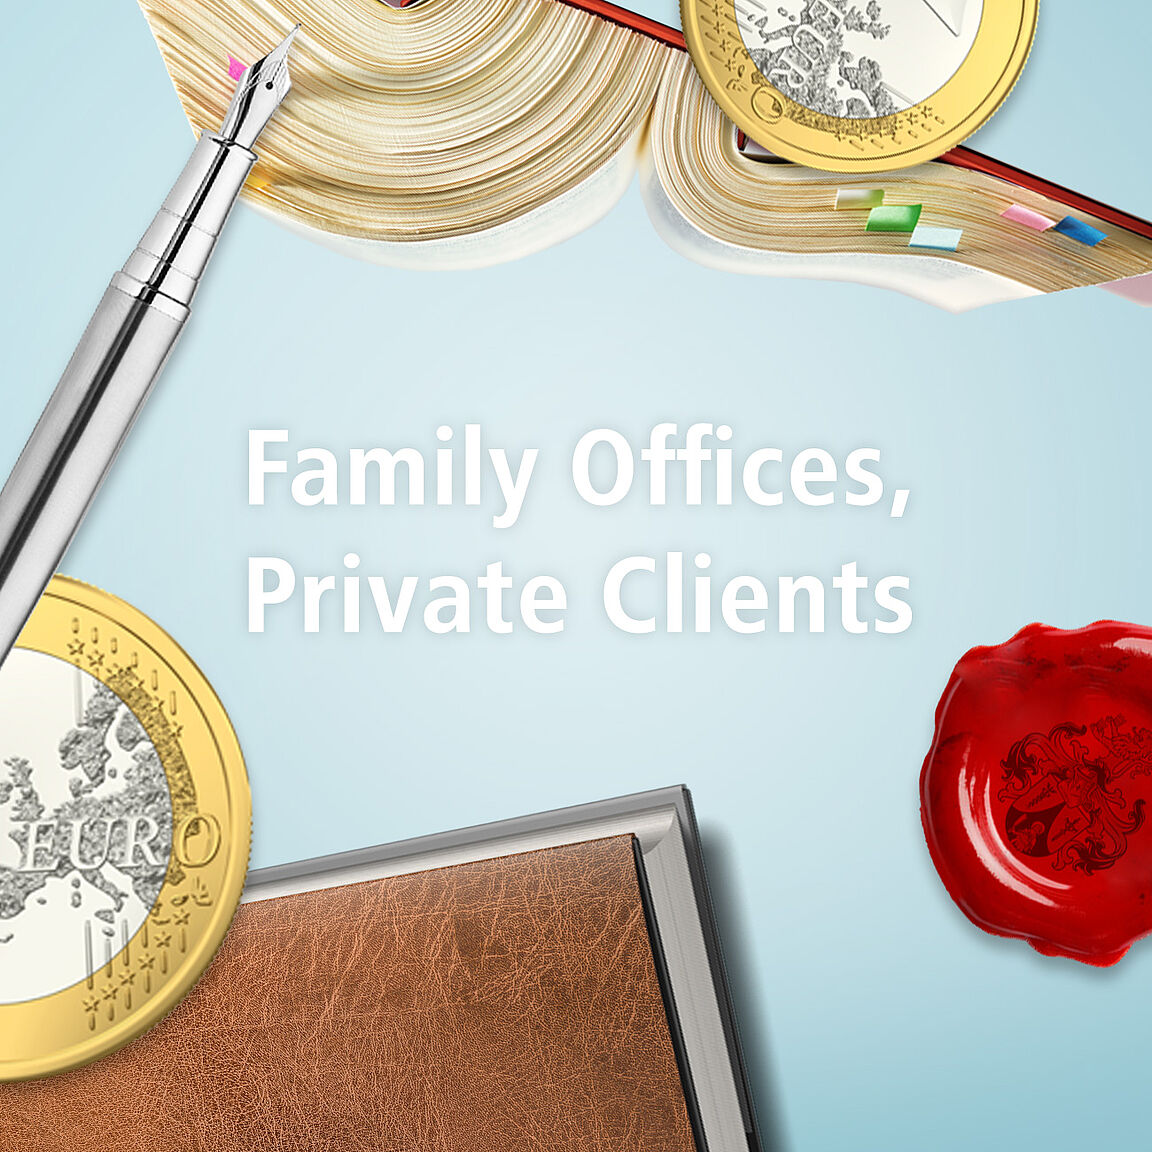 private clients, family offices